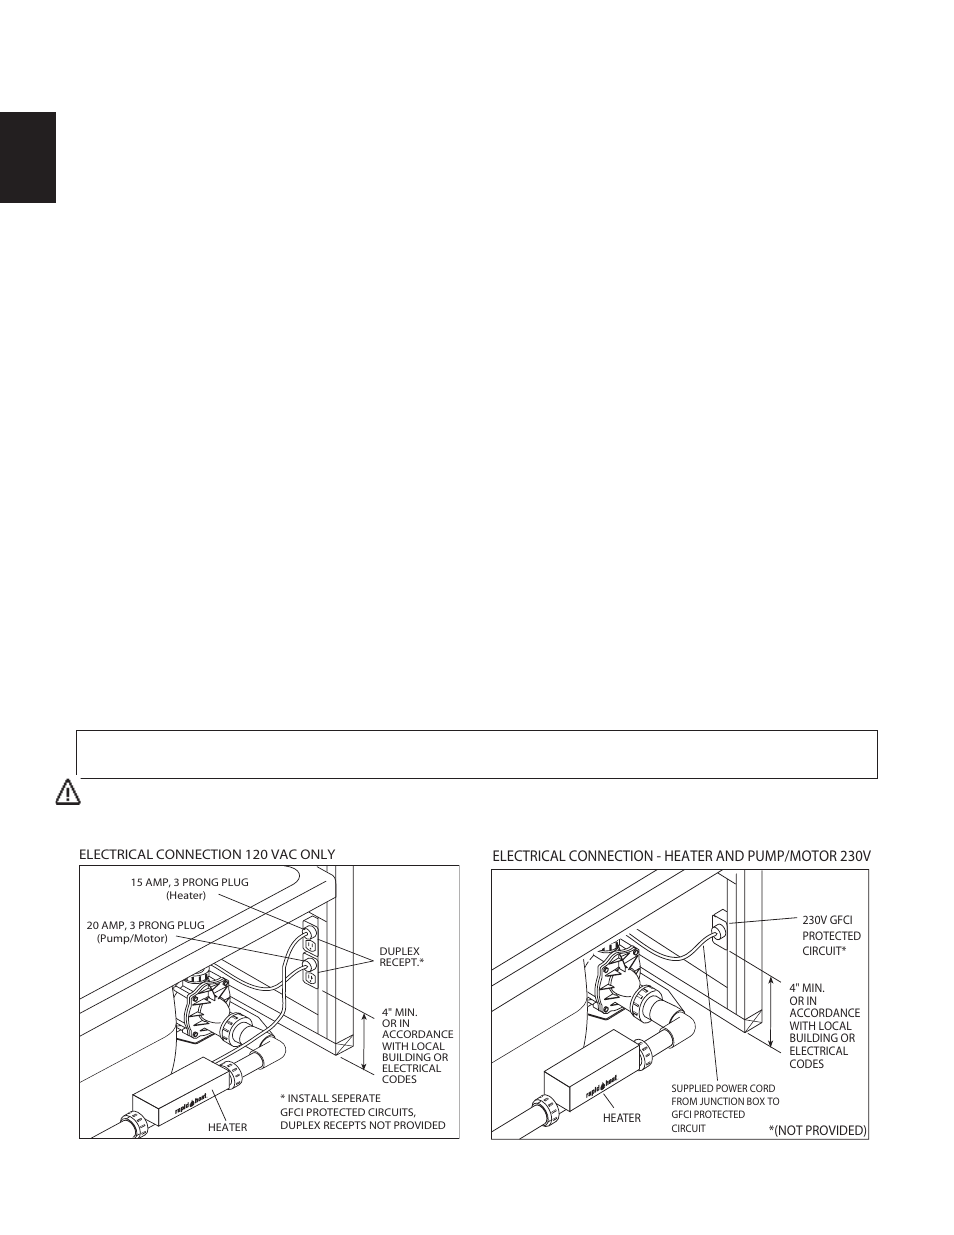 Installation Instructions Electrical Connections Jacuzzi Fuzion 20 Amp Breaker What Should Be Used A Gfci Or Is 15 Bath Series 7260 User Manual Page 16 26